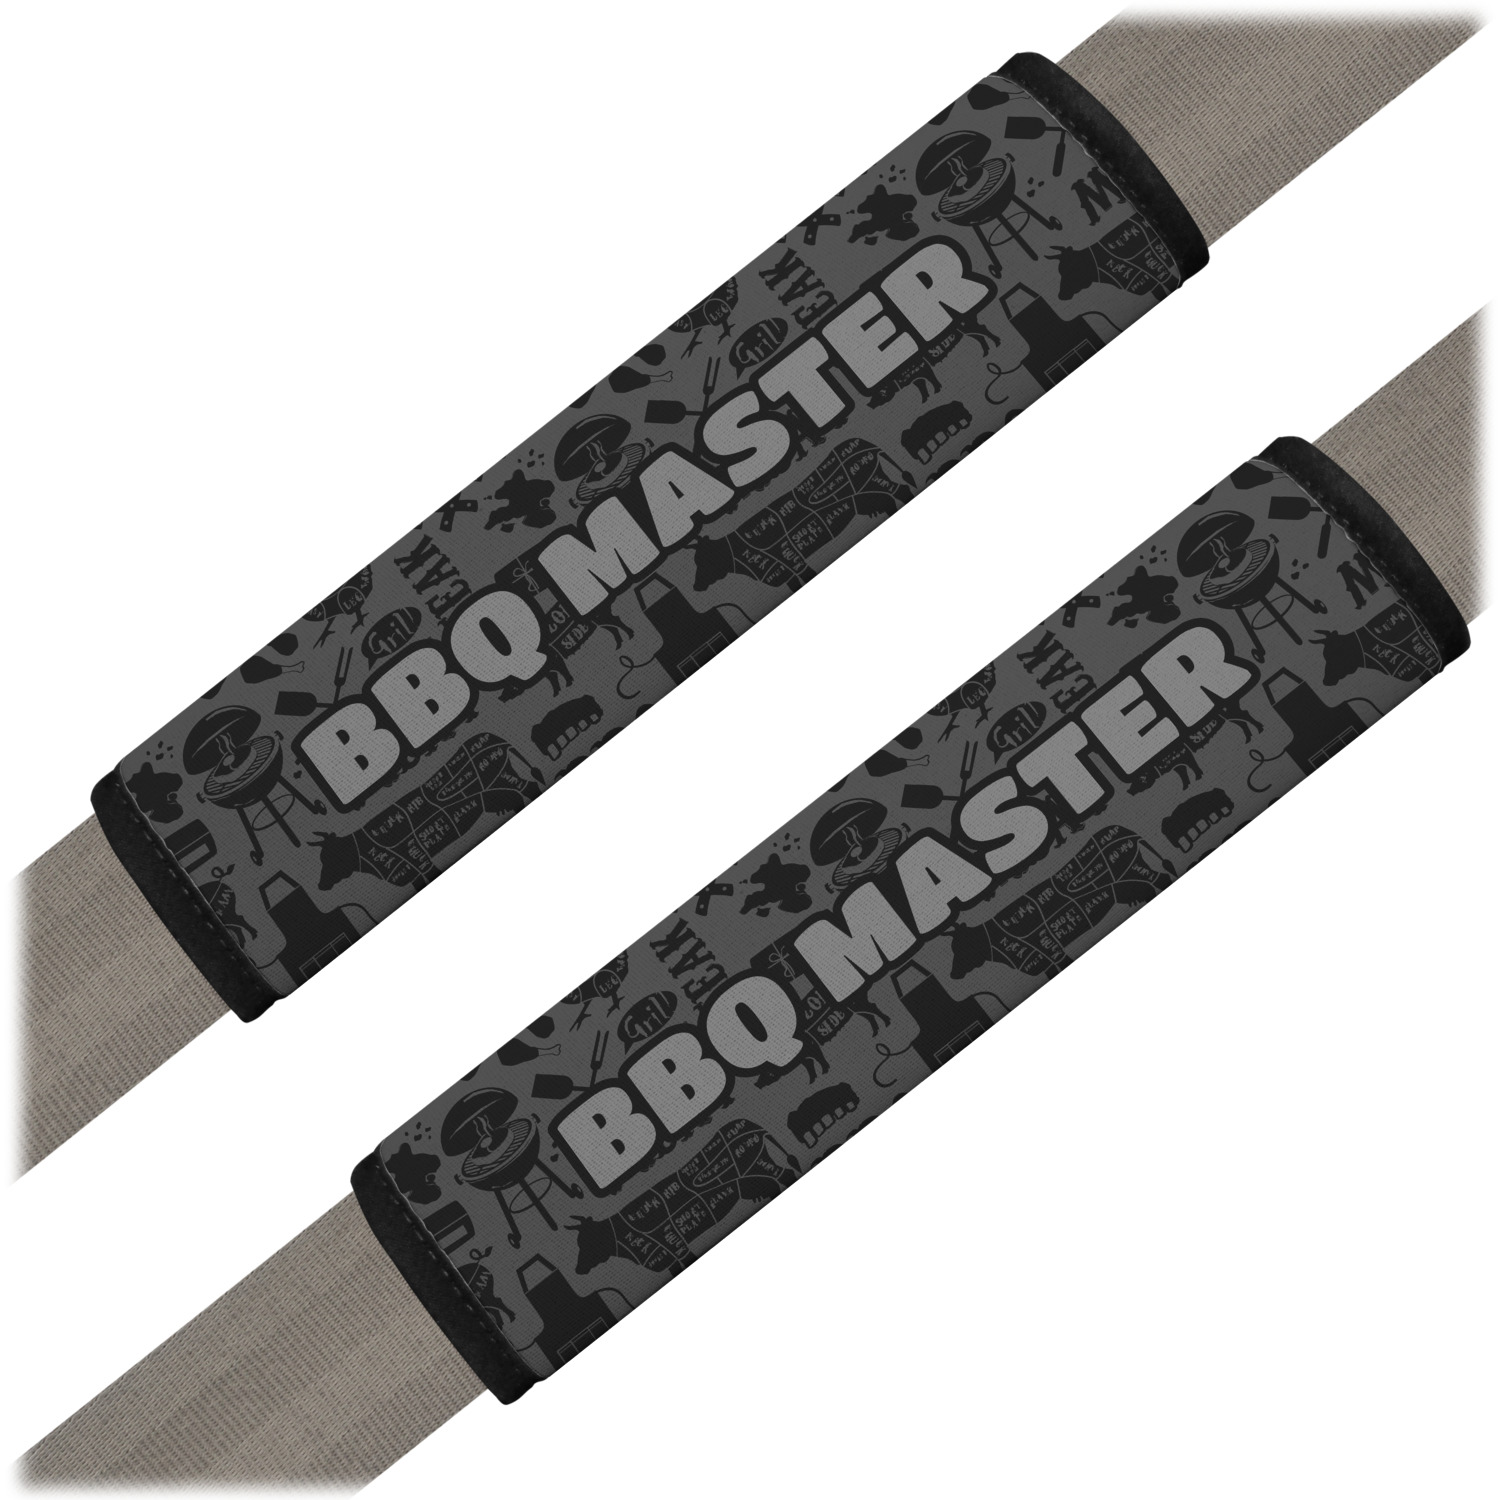 Barbeque Seat Belt Covers Set Of 2 Personalized